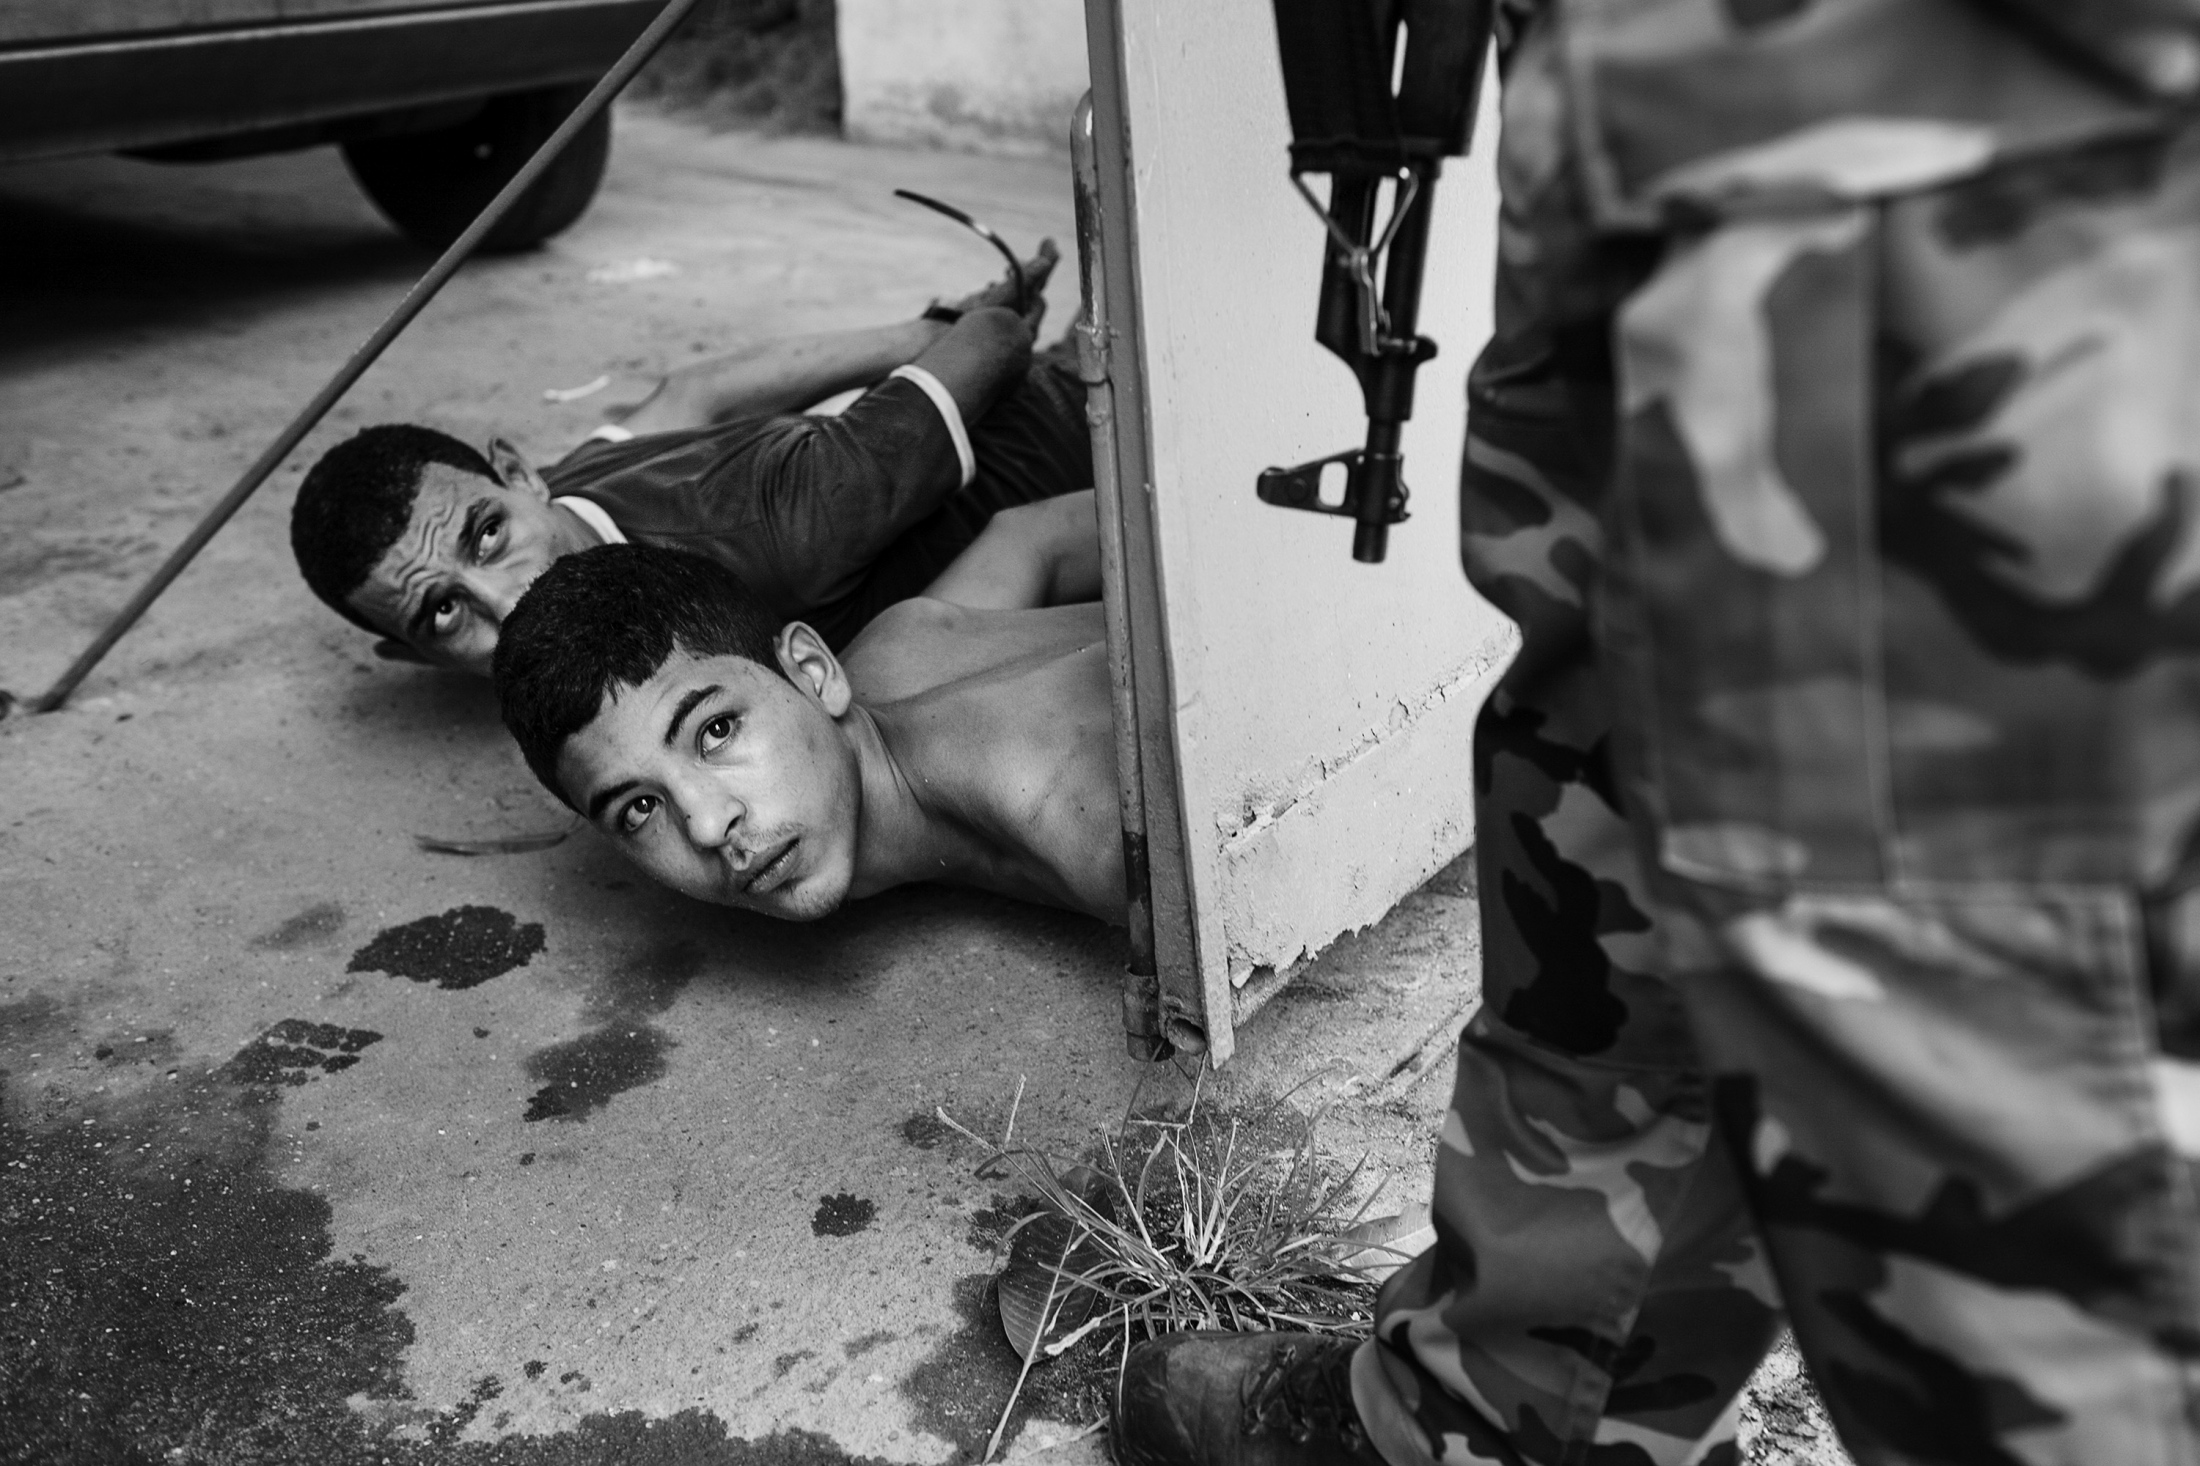 """Two suspected members of the drug trafficking gang, """"Terceiro Comando"""" (the boy in the center of the image is 15 years old) are arrested during a police operation in the Acari favela in northern Rio de Janeiro. February 2008."""